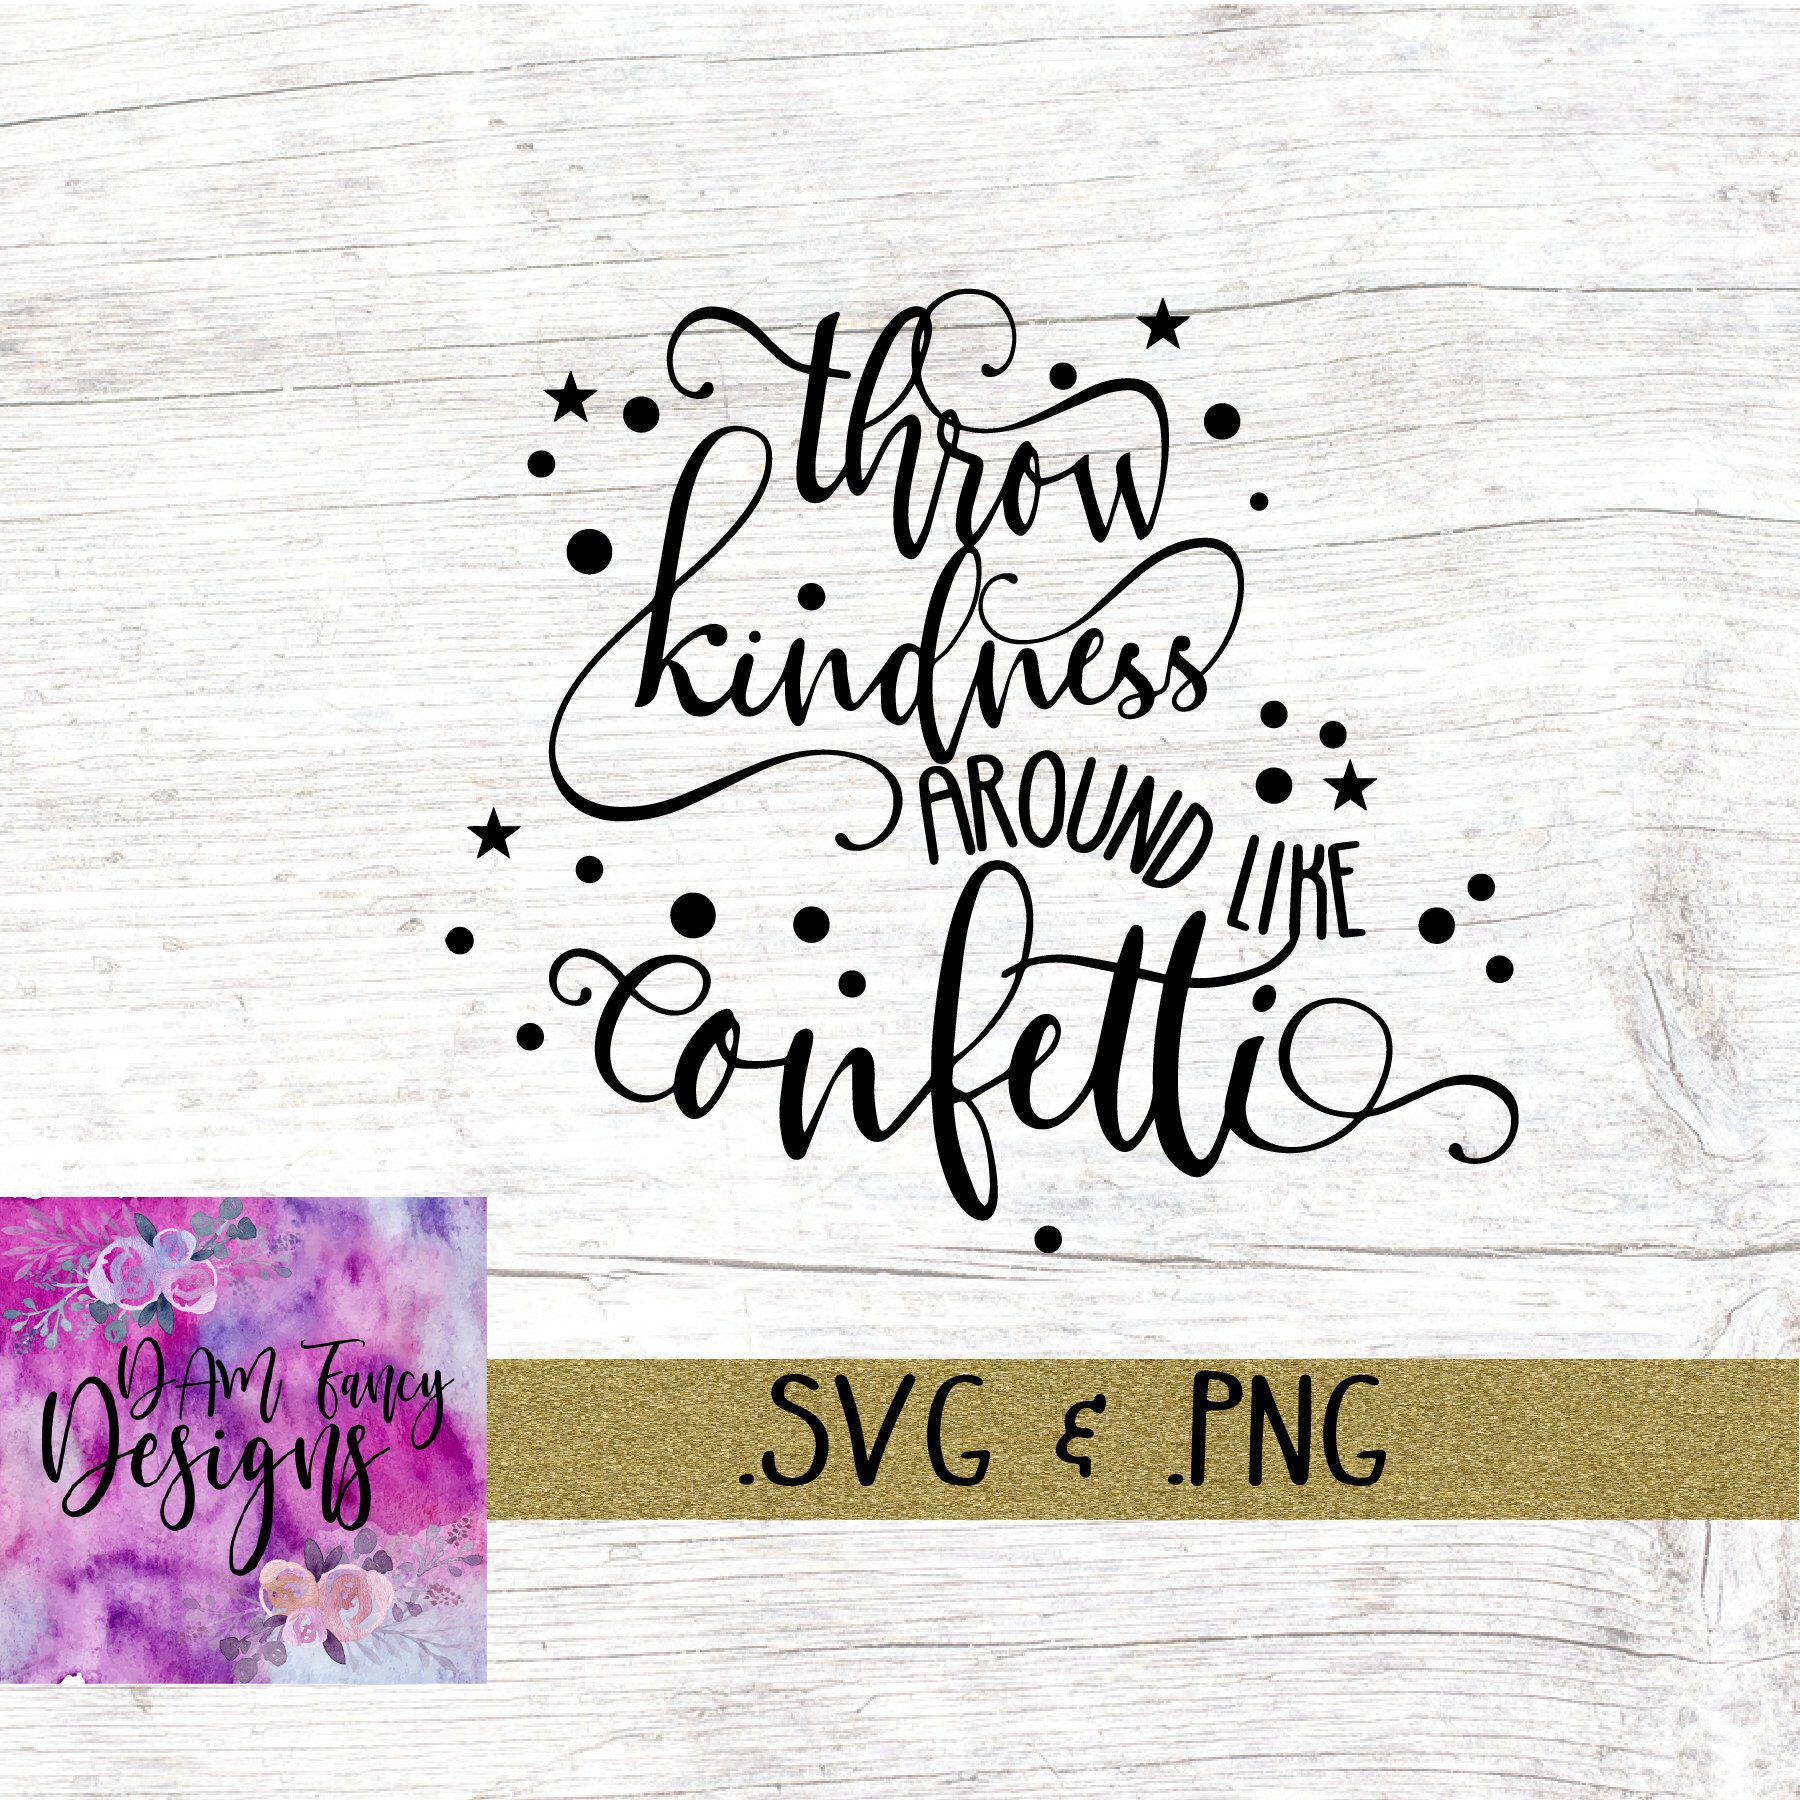 Pin by Danielle Donati on Svgs- printables and cut files | Kindness